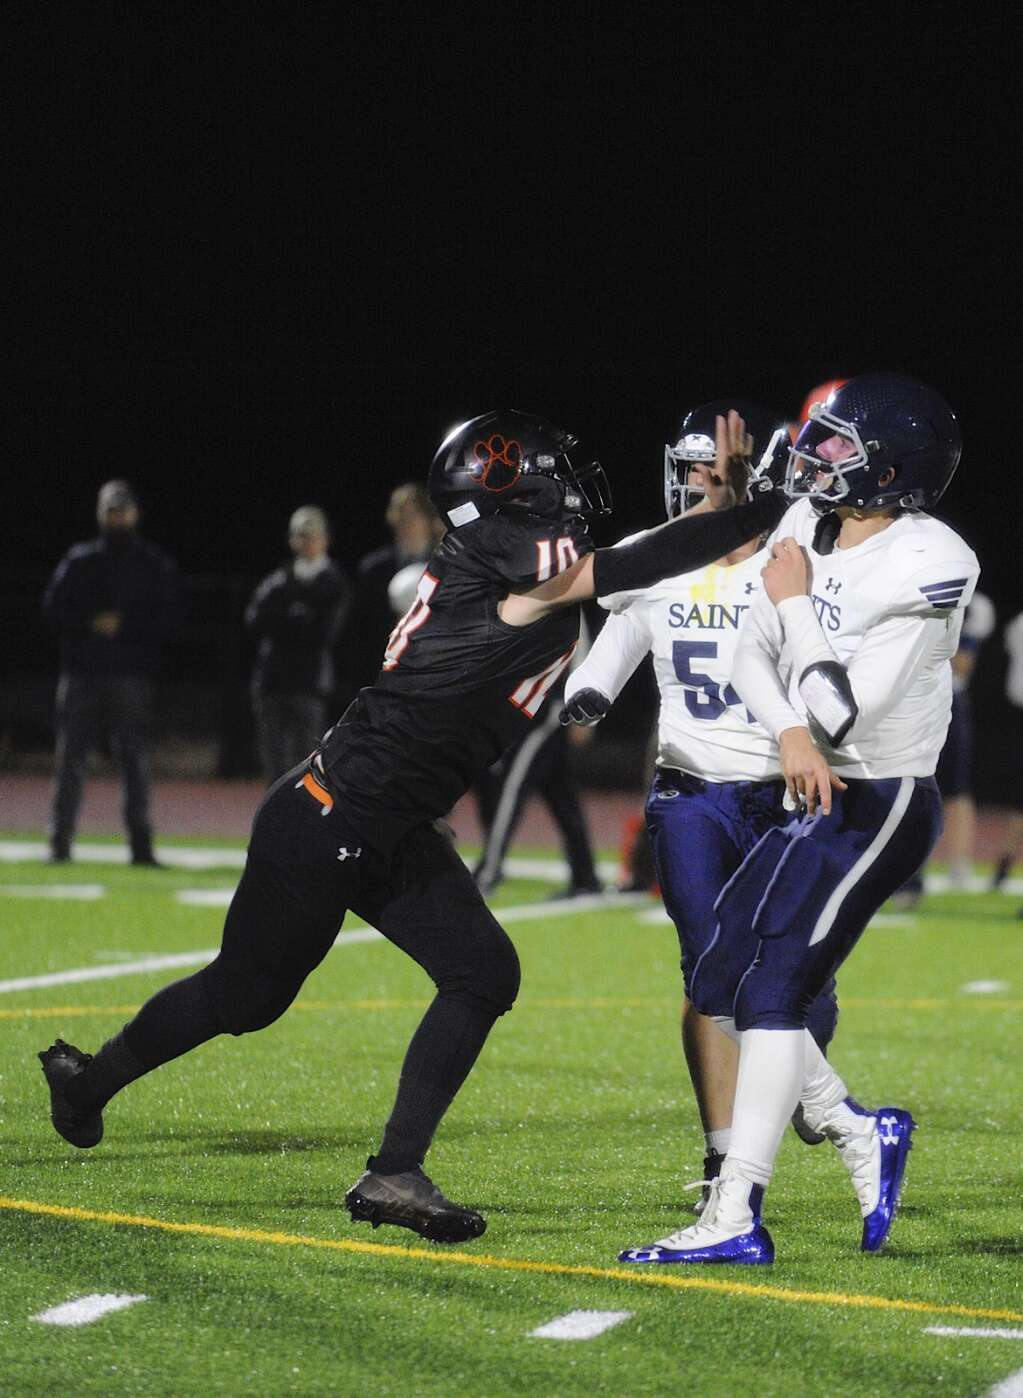 Wesley Gioia, a junior on the Hayden football team, gets in the face of the Saints quarterback during a game against Vail Christian at home on Friday.   Shelby Reardon/Steamboat Pilot & Today